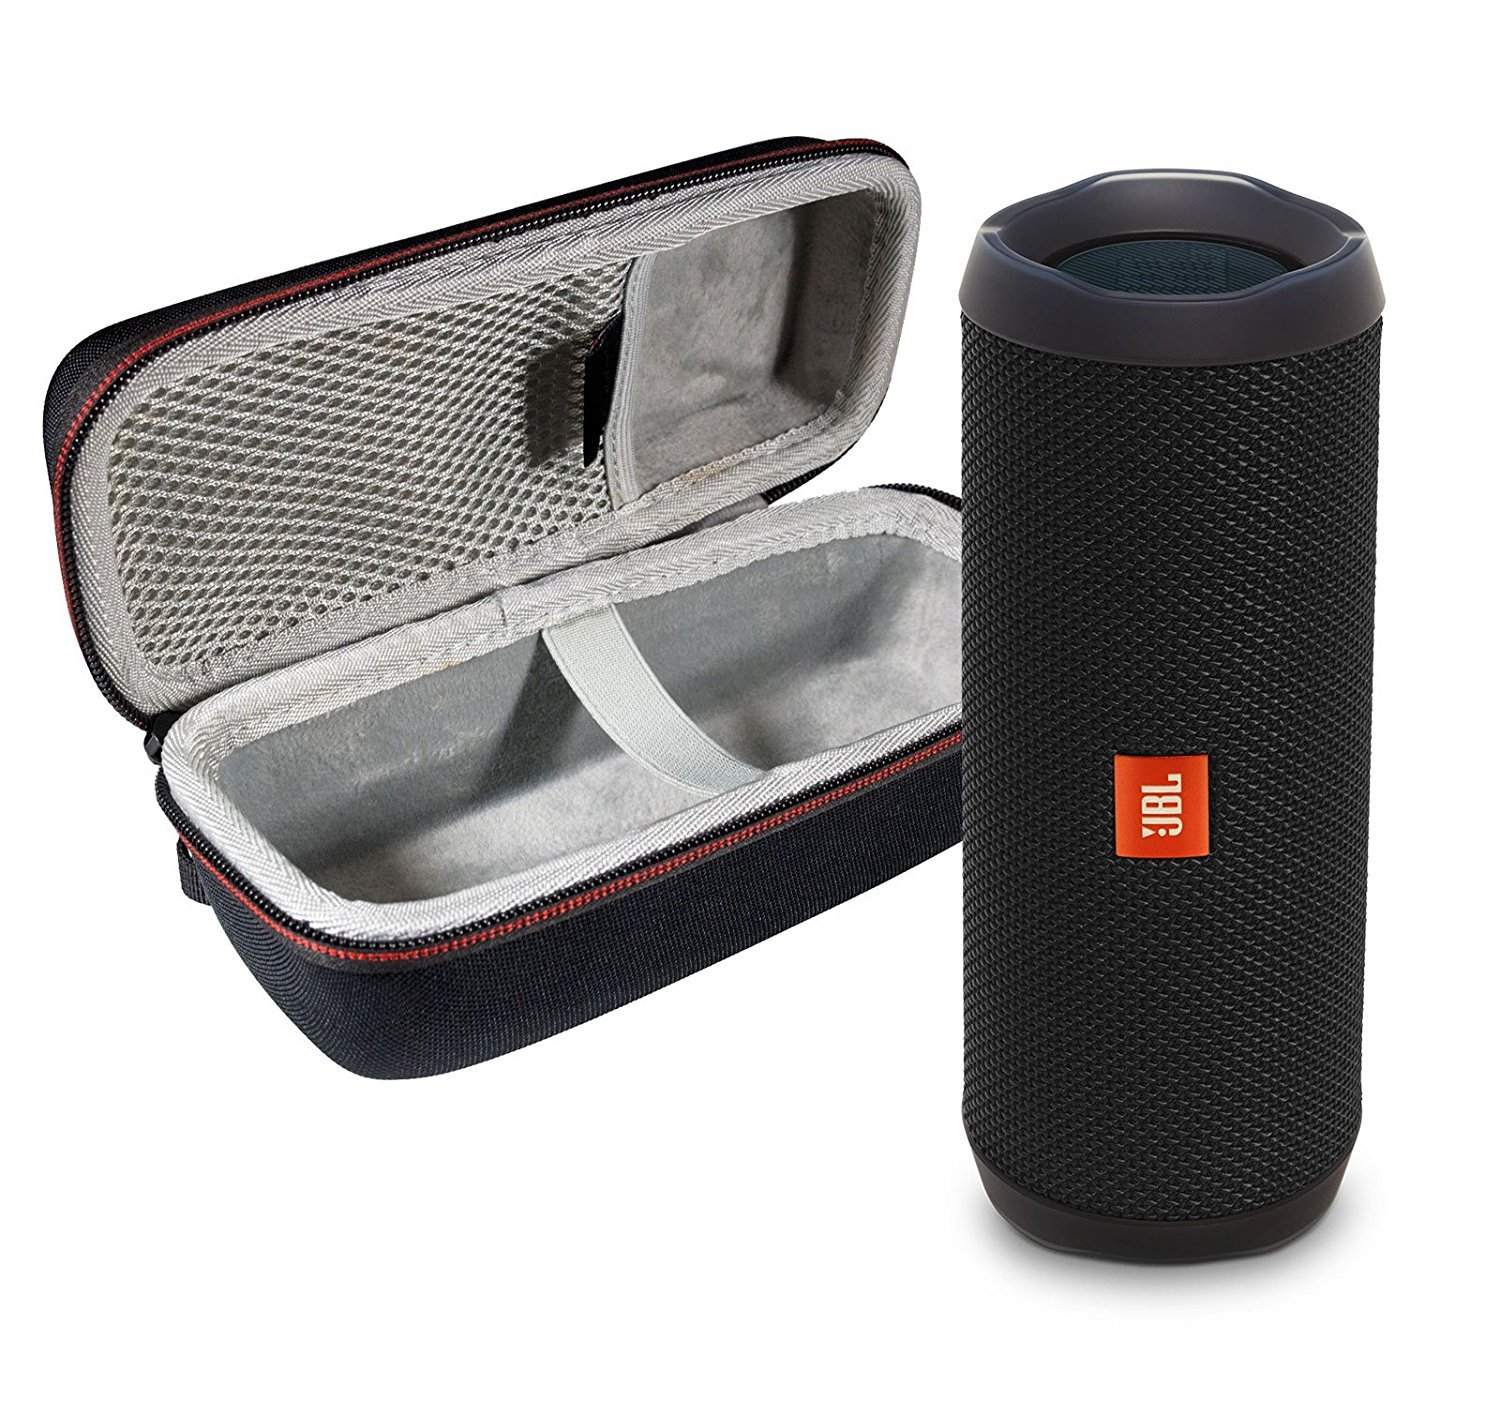 JBL Flip 4 Portable Bluetooth Wireless Speaker Bundle with Protective Travel Case - Black by JBL